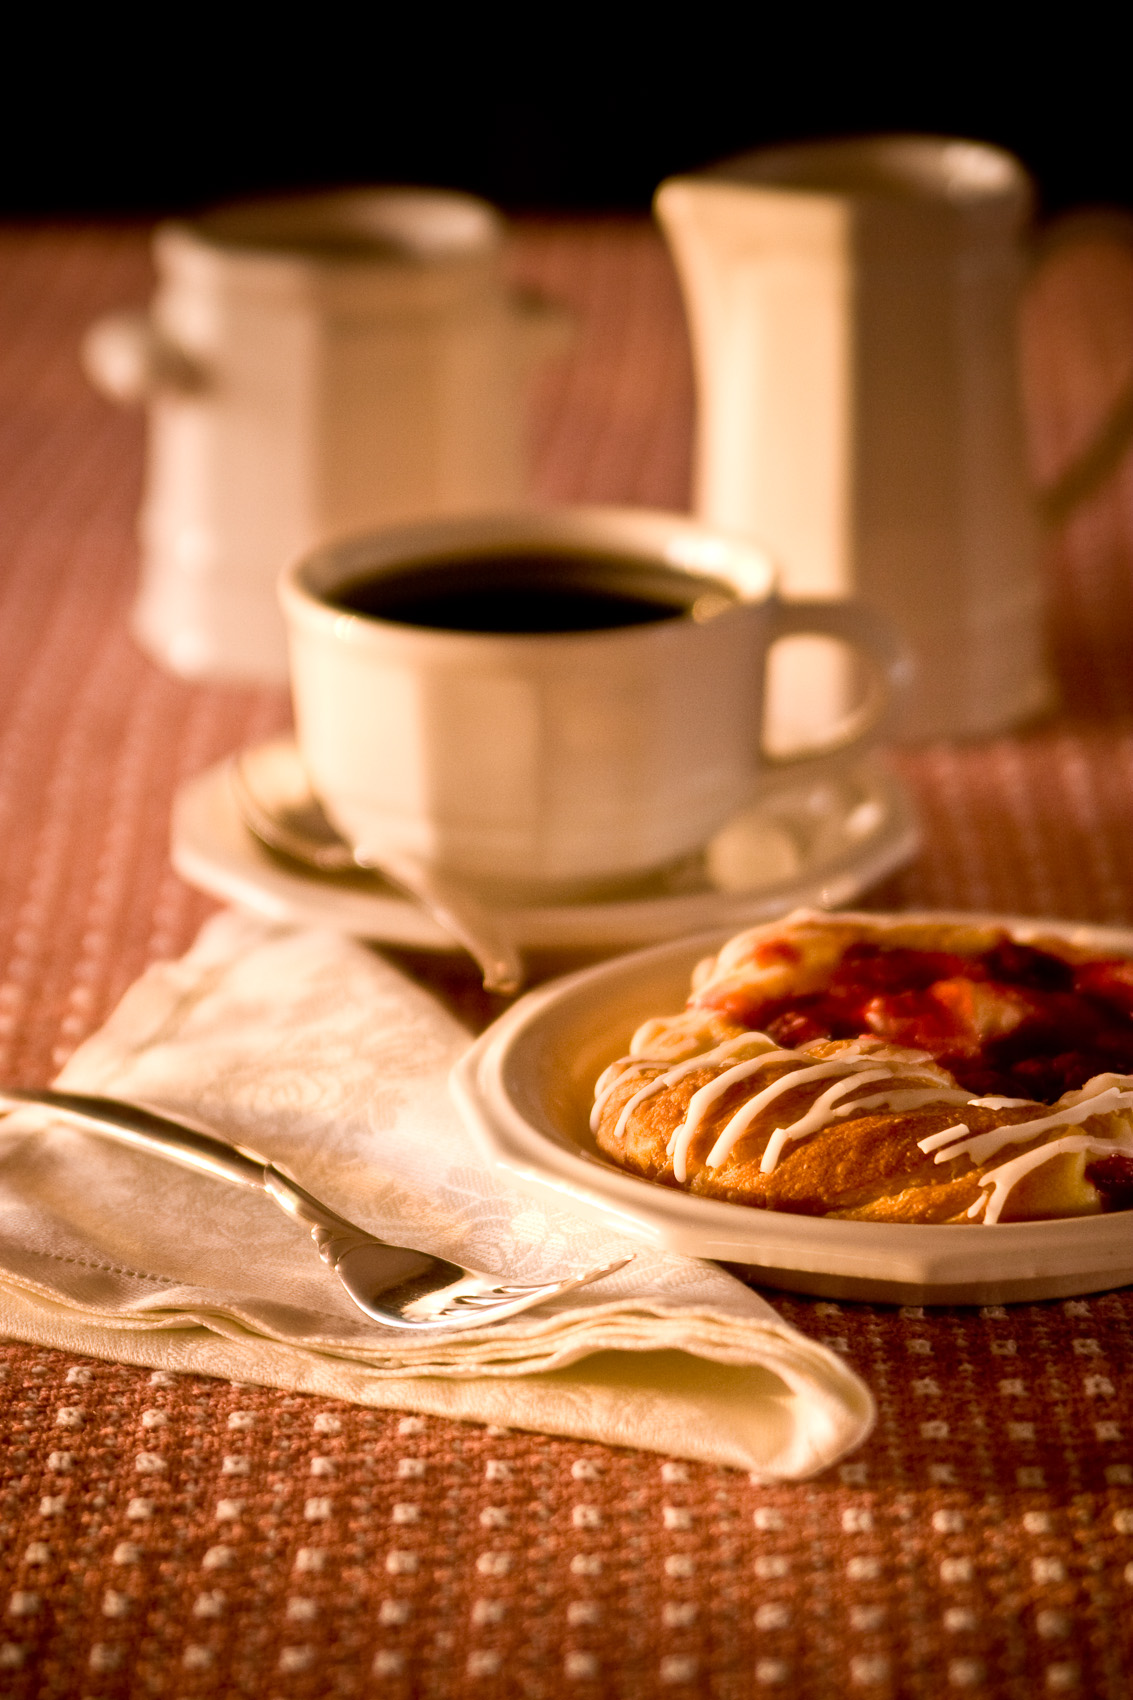 Food Still Life of Coffee and Danish on Classic Dinnerware | J. Eldon Zimmerman Photography | Lancaster, PA Commercial Photographer